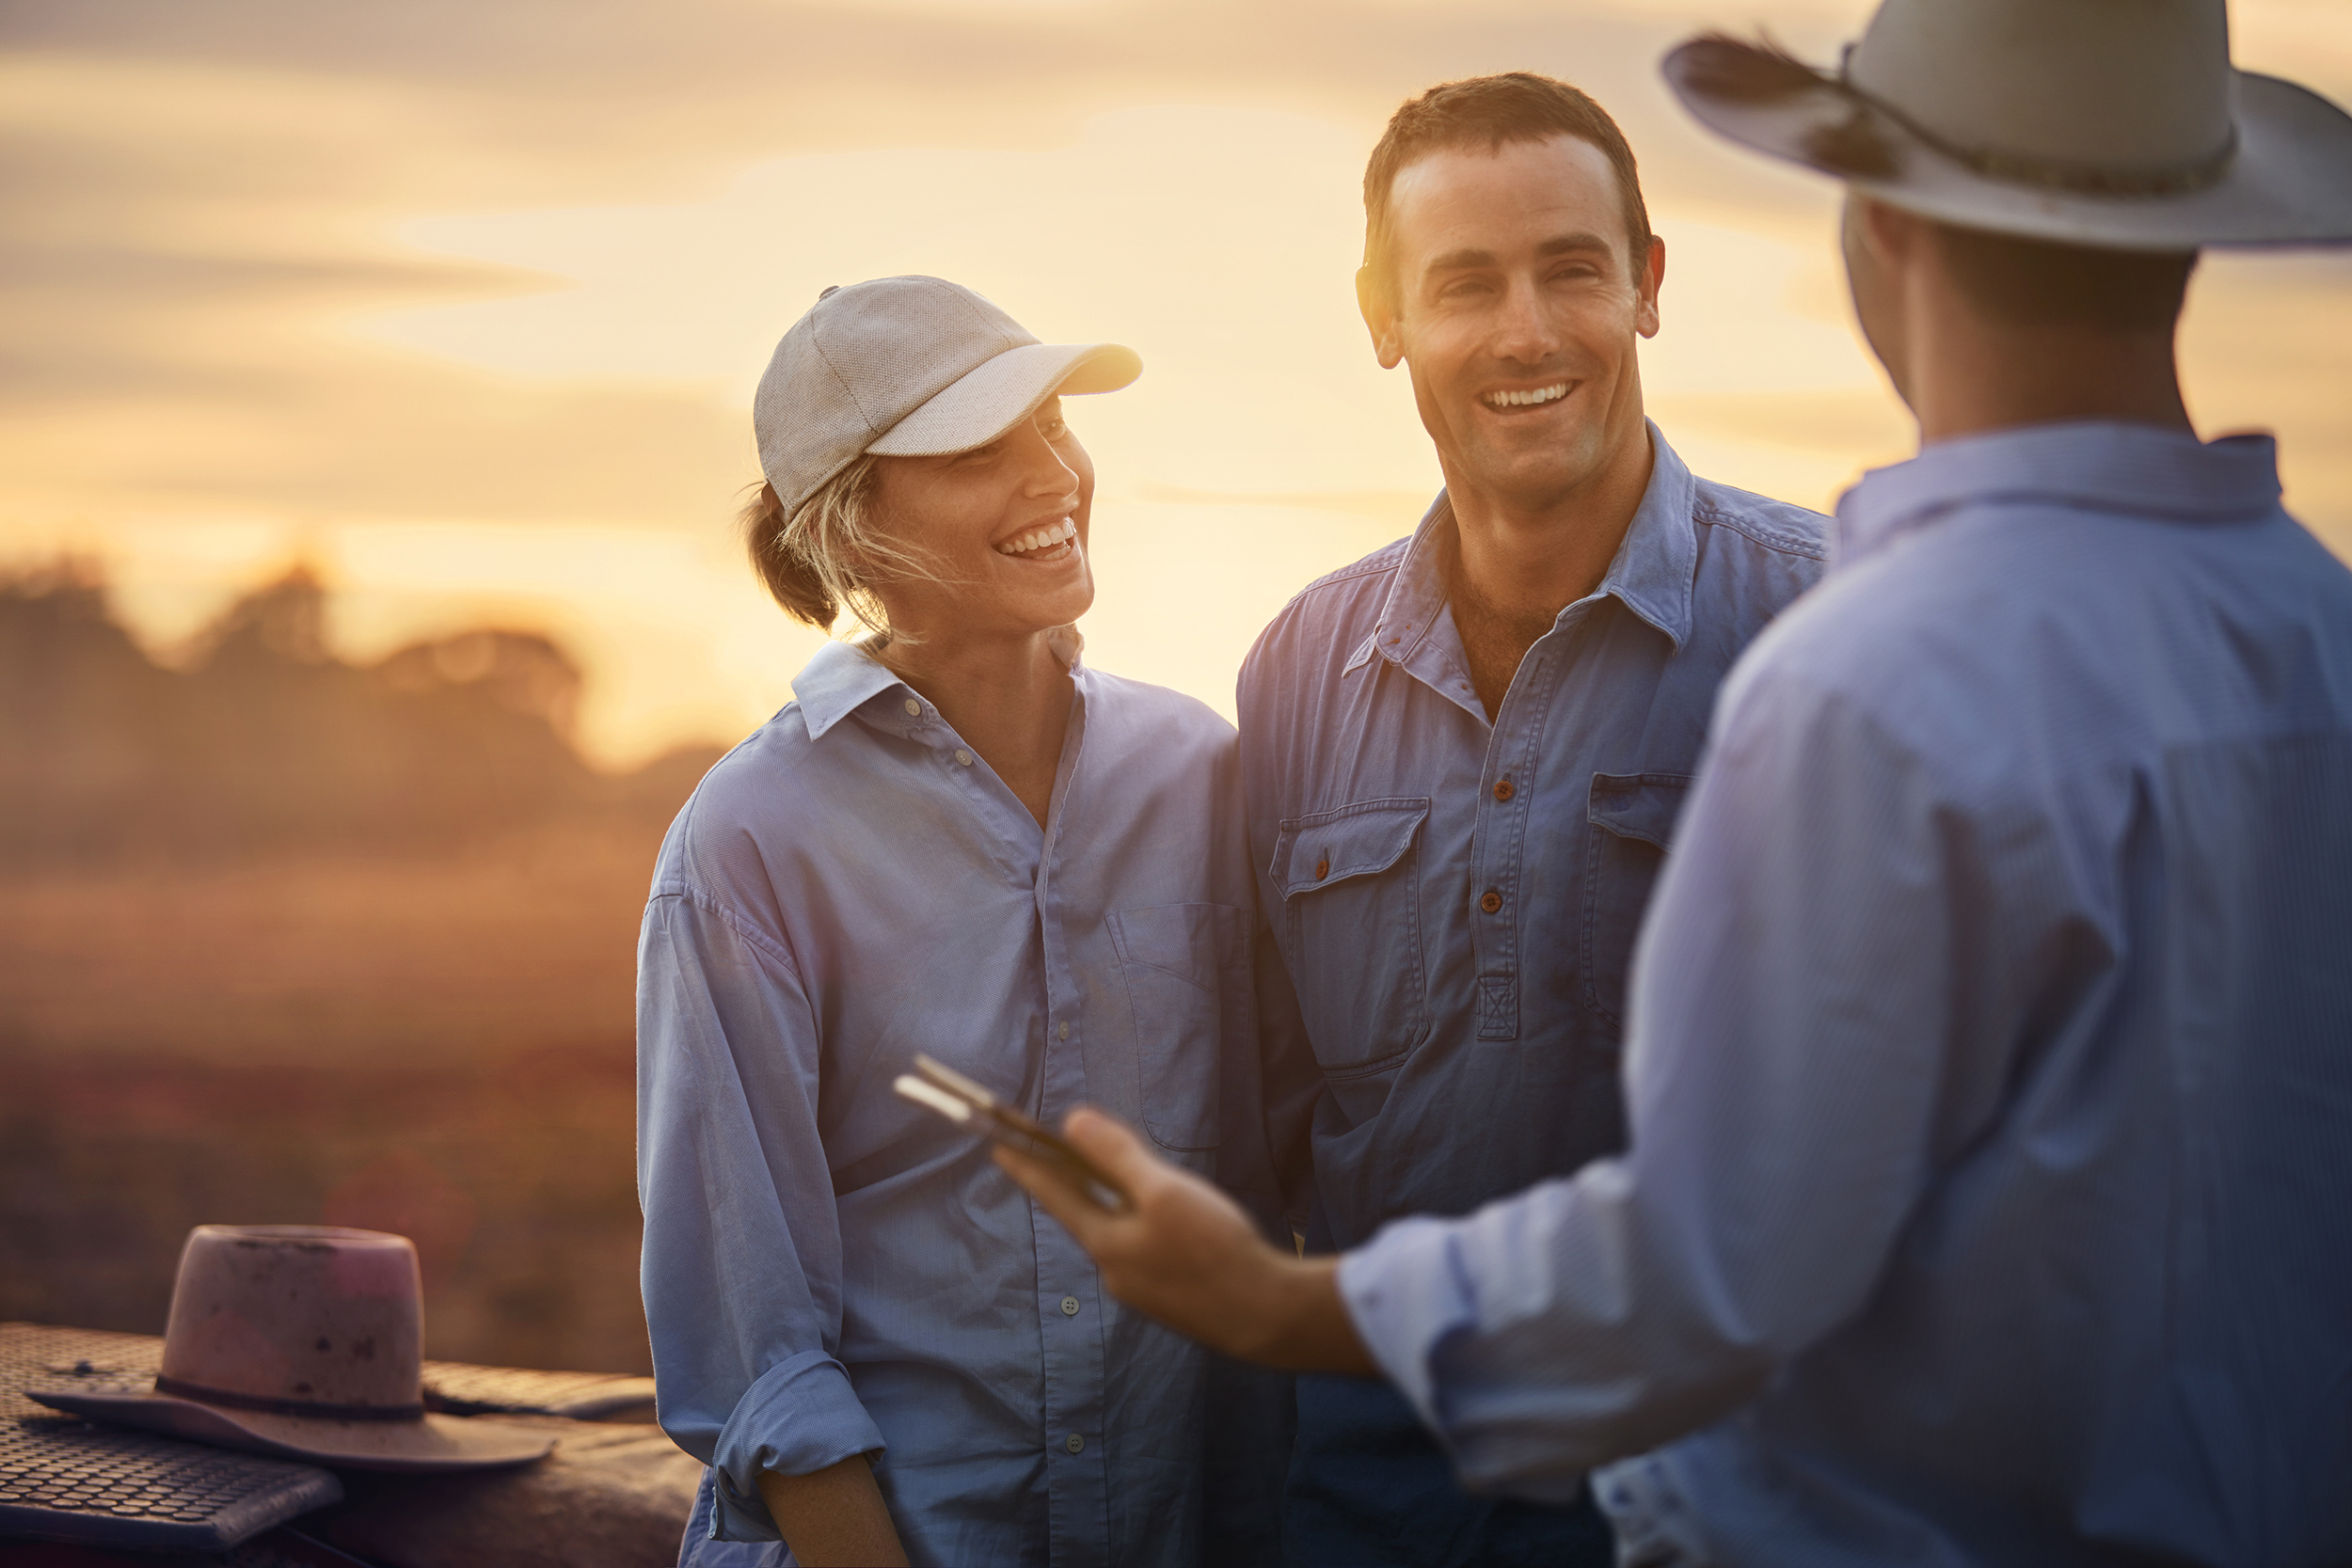 farmers-thom-rigney-professional-photographer-bayer-campaign-advertising-australia-004